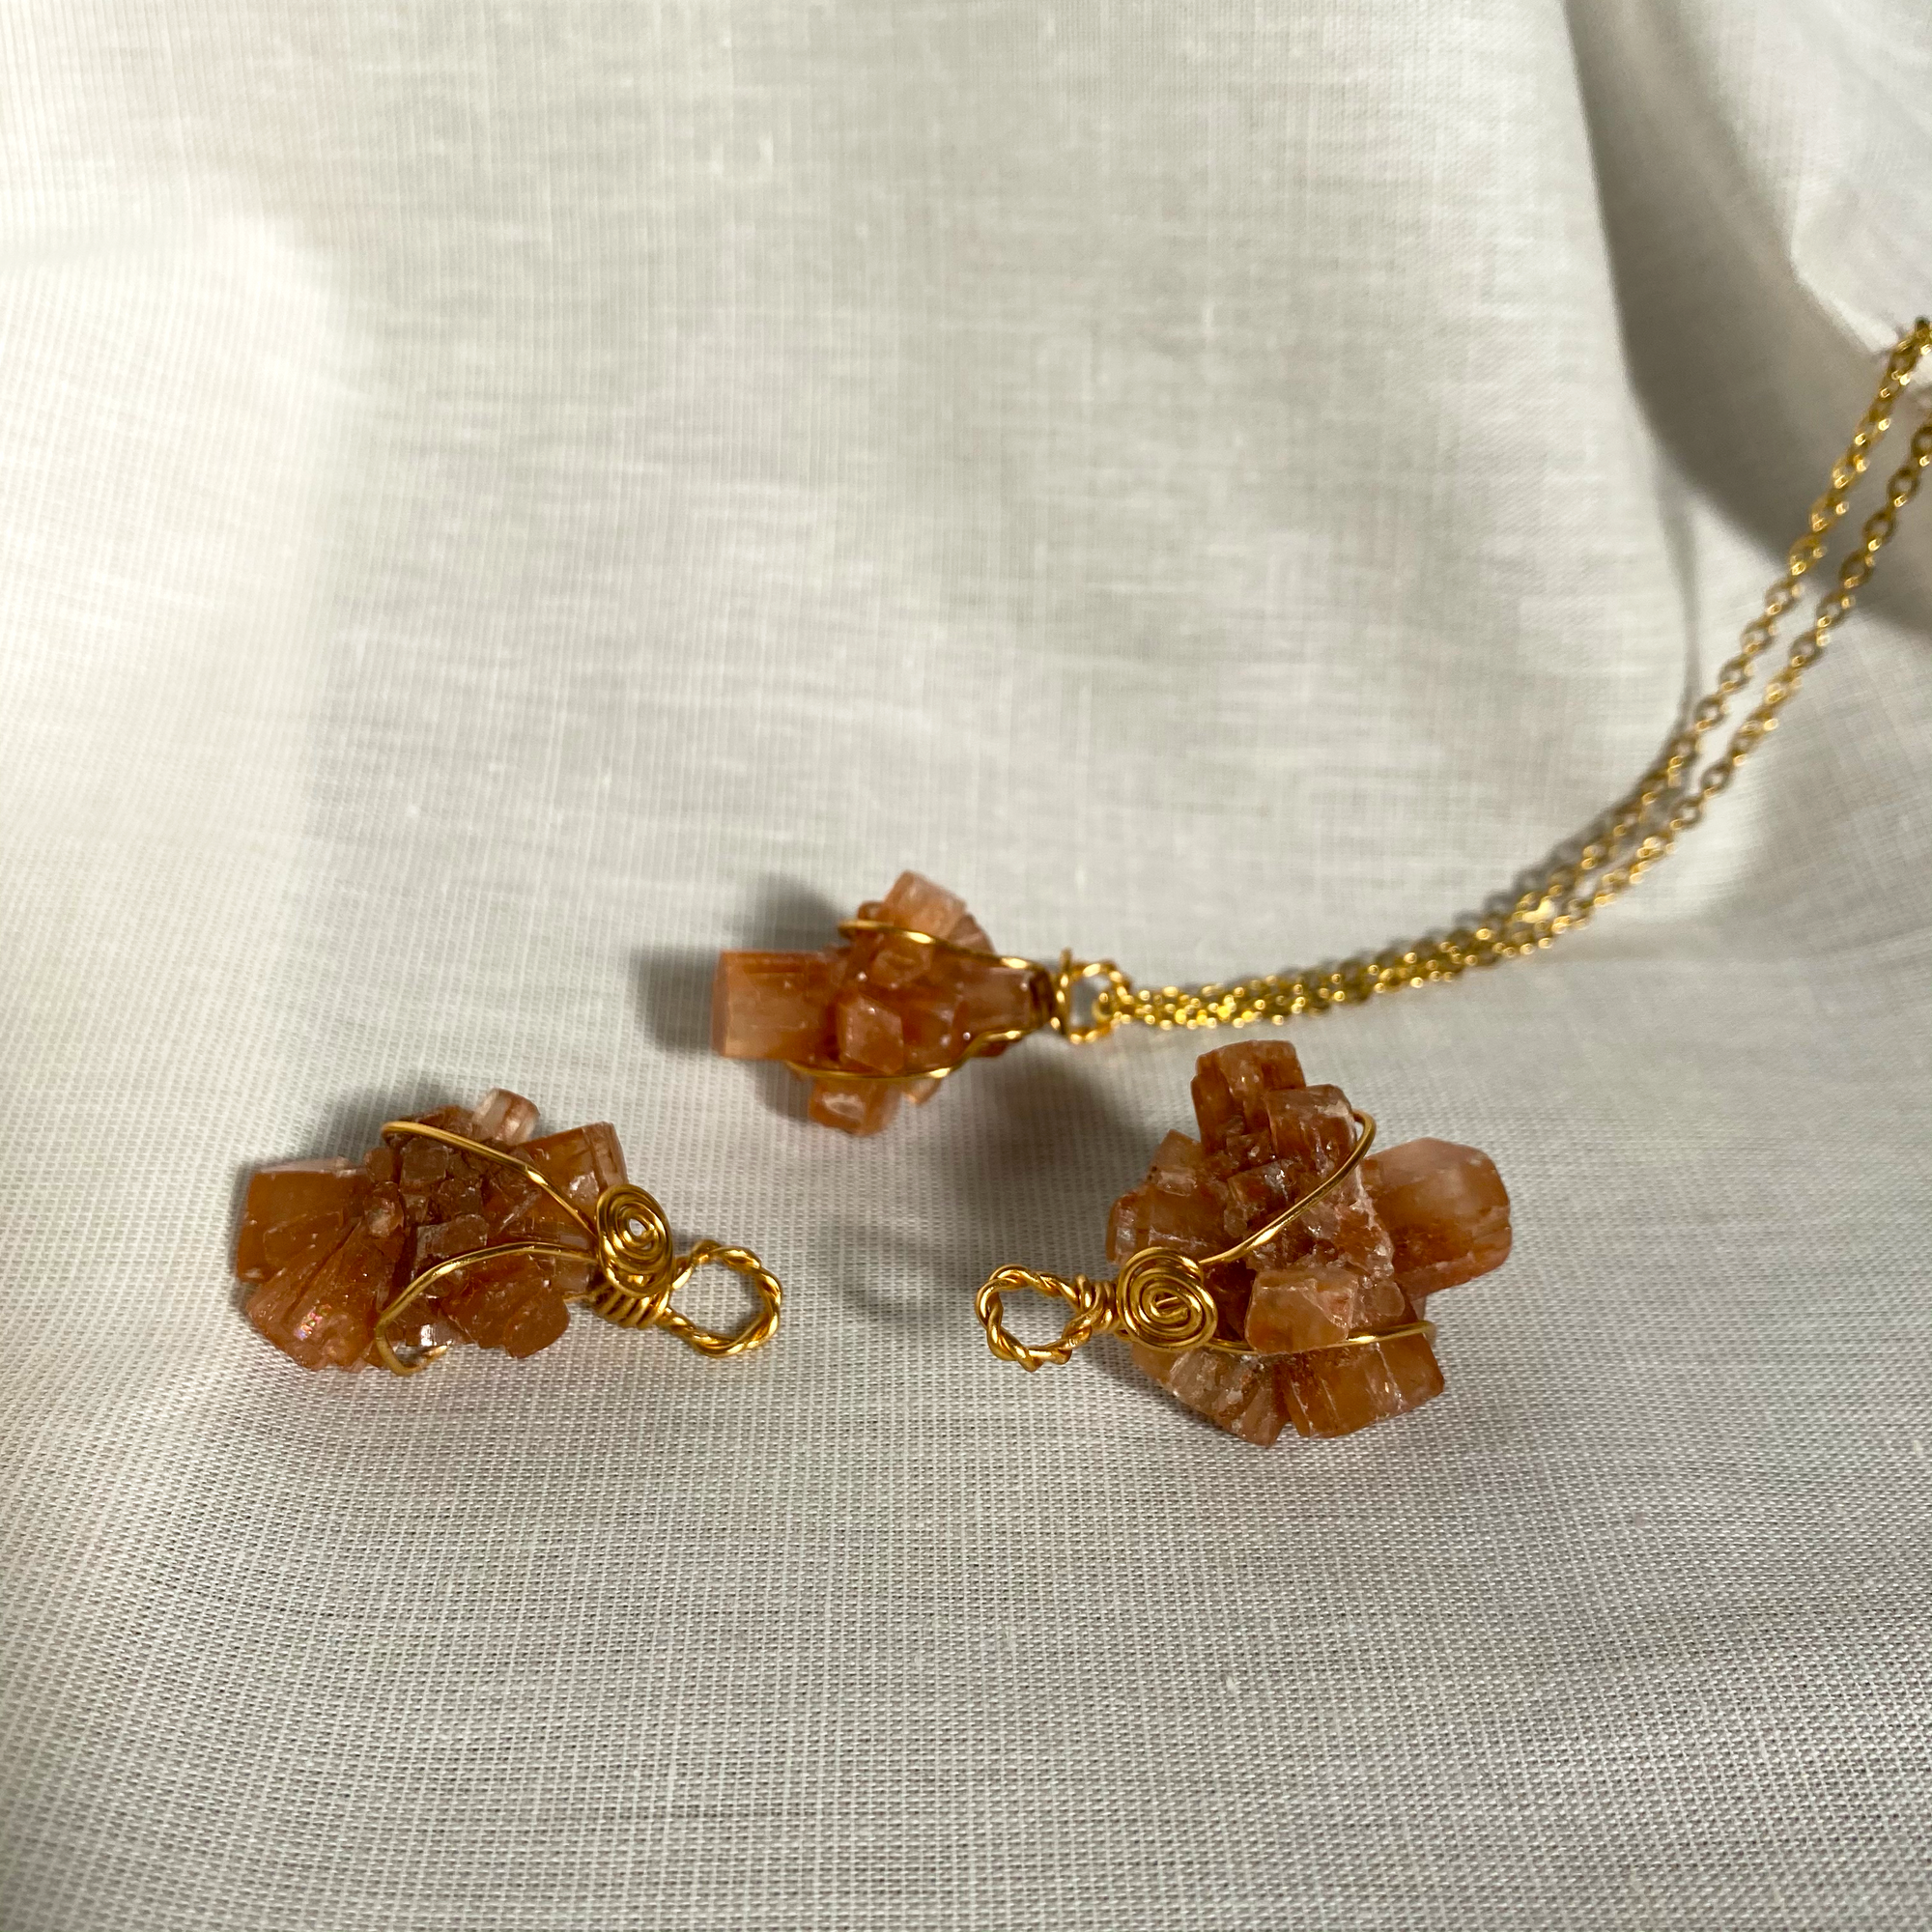 Aragonite Necklace